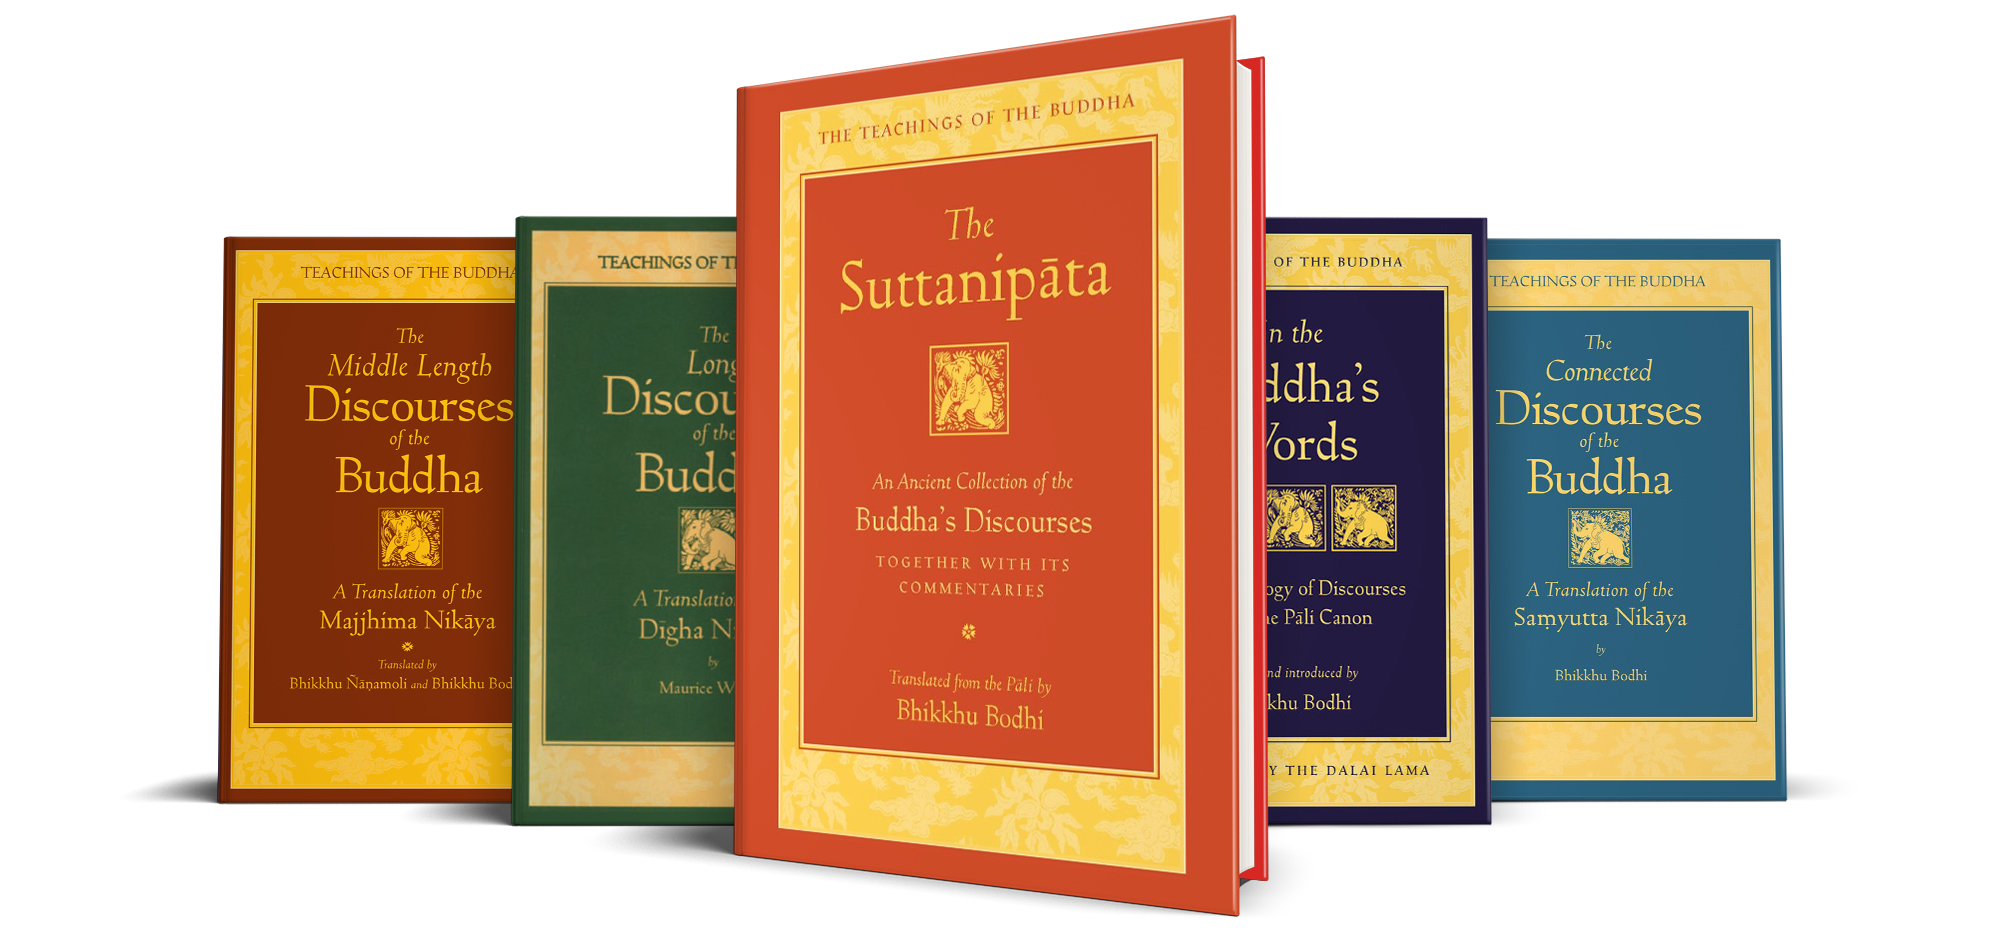 Image of books in the Teachings of the Buddha series, the renowned Pali Canon translation by Bhikkhu Bodhi, sharing the words of the Buddha